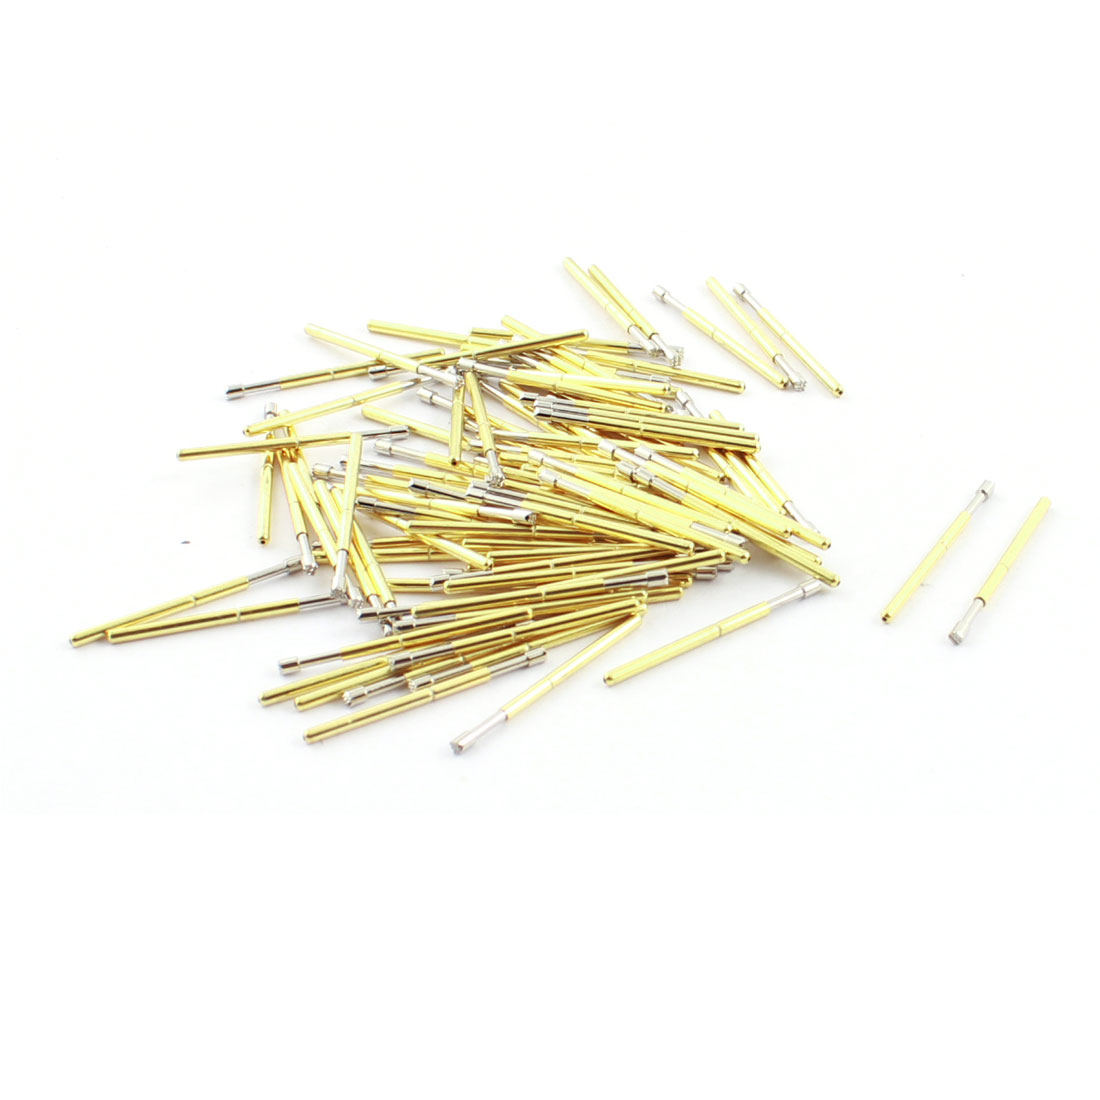 100pcs P160-H2 1.5mm Dia 9-Pointed Plum Tip 24.5mm Length Metal Spring Test Probes Testing Pins for PCB Board